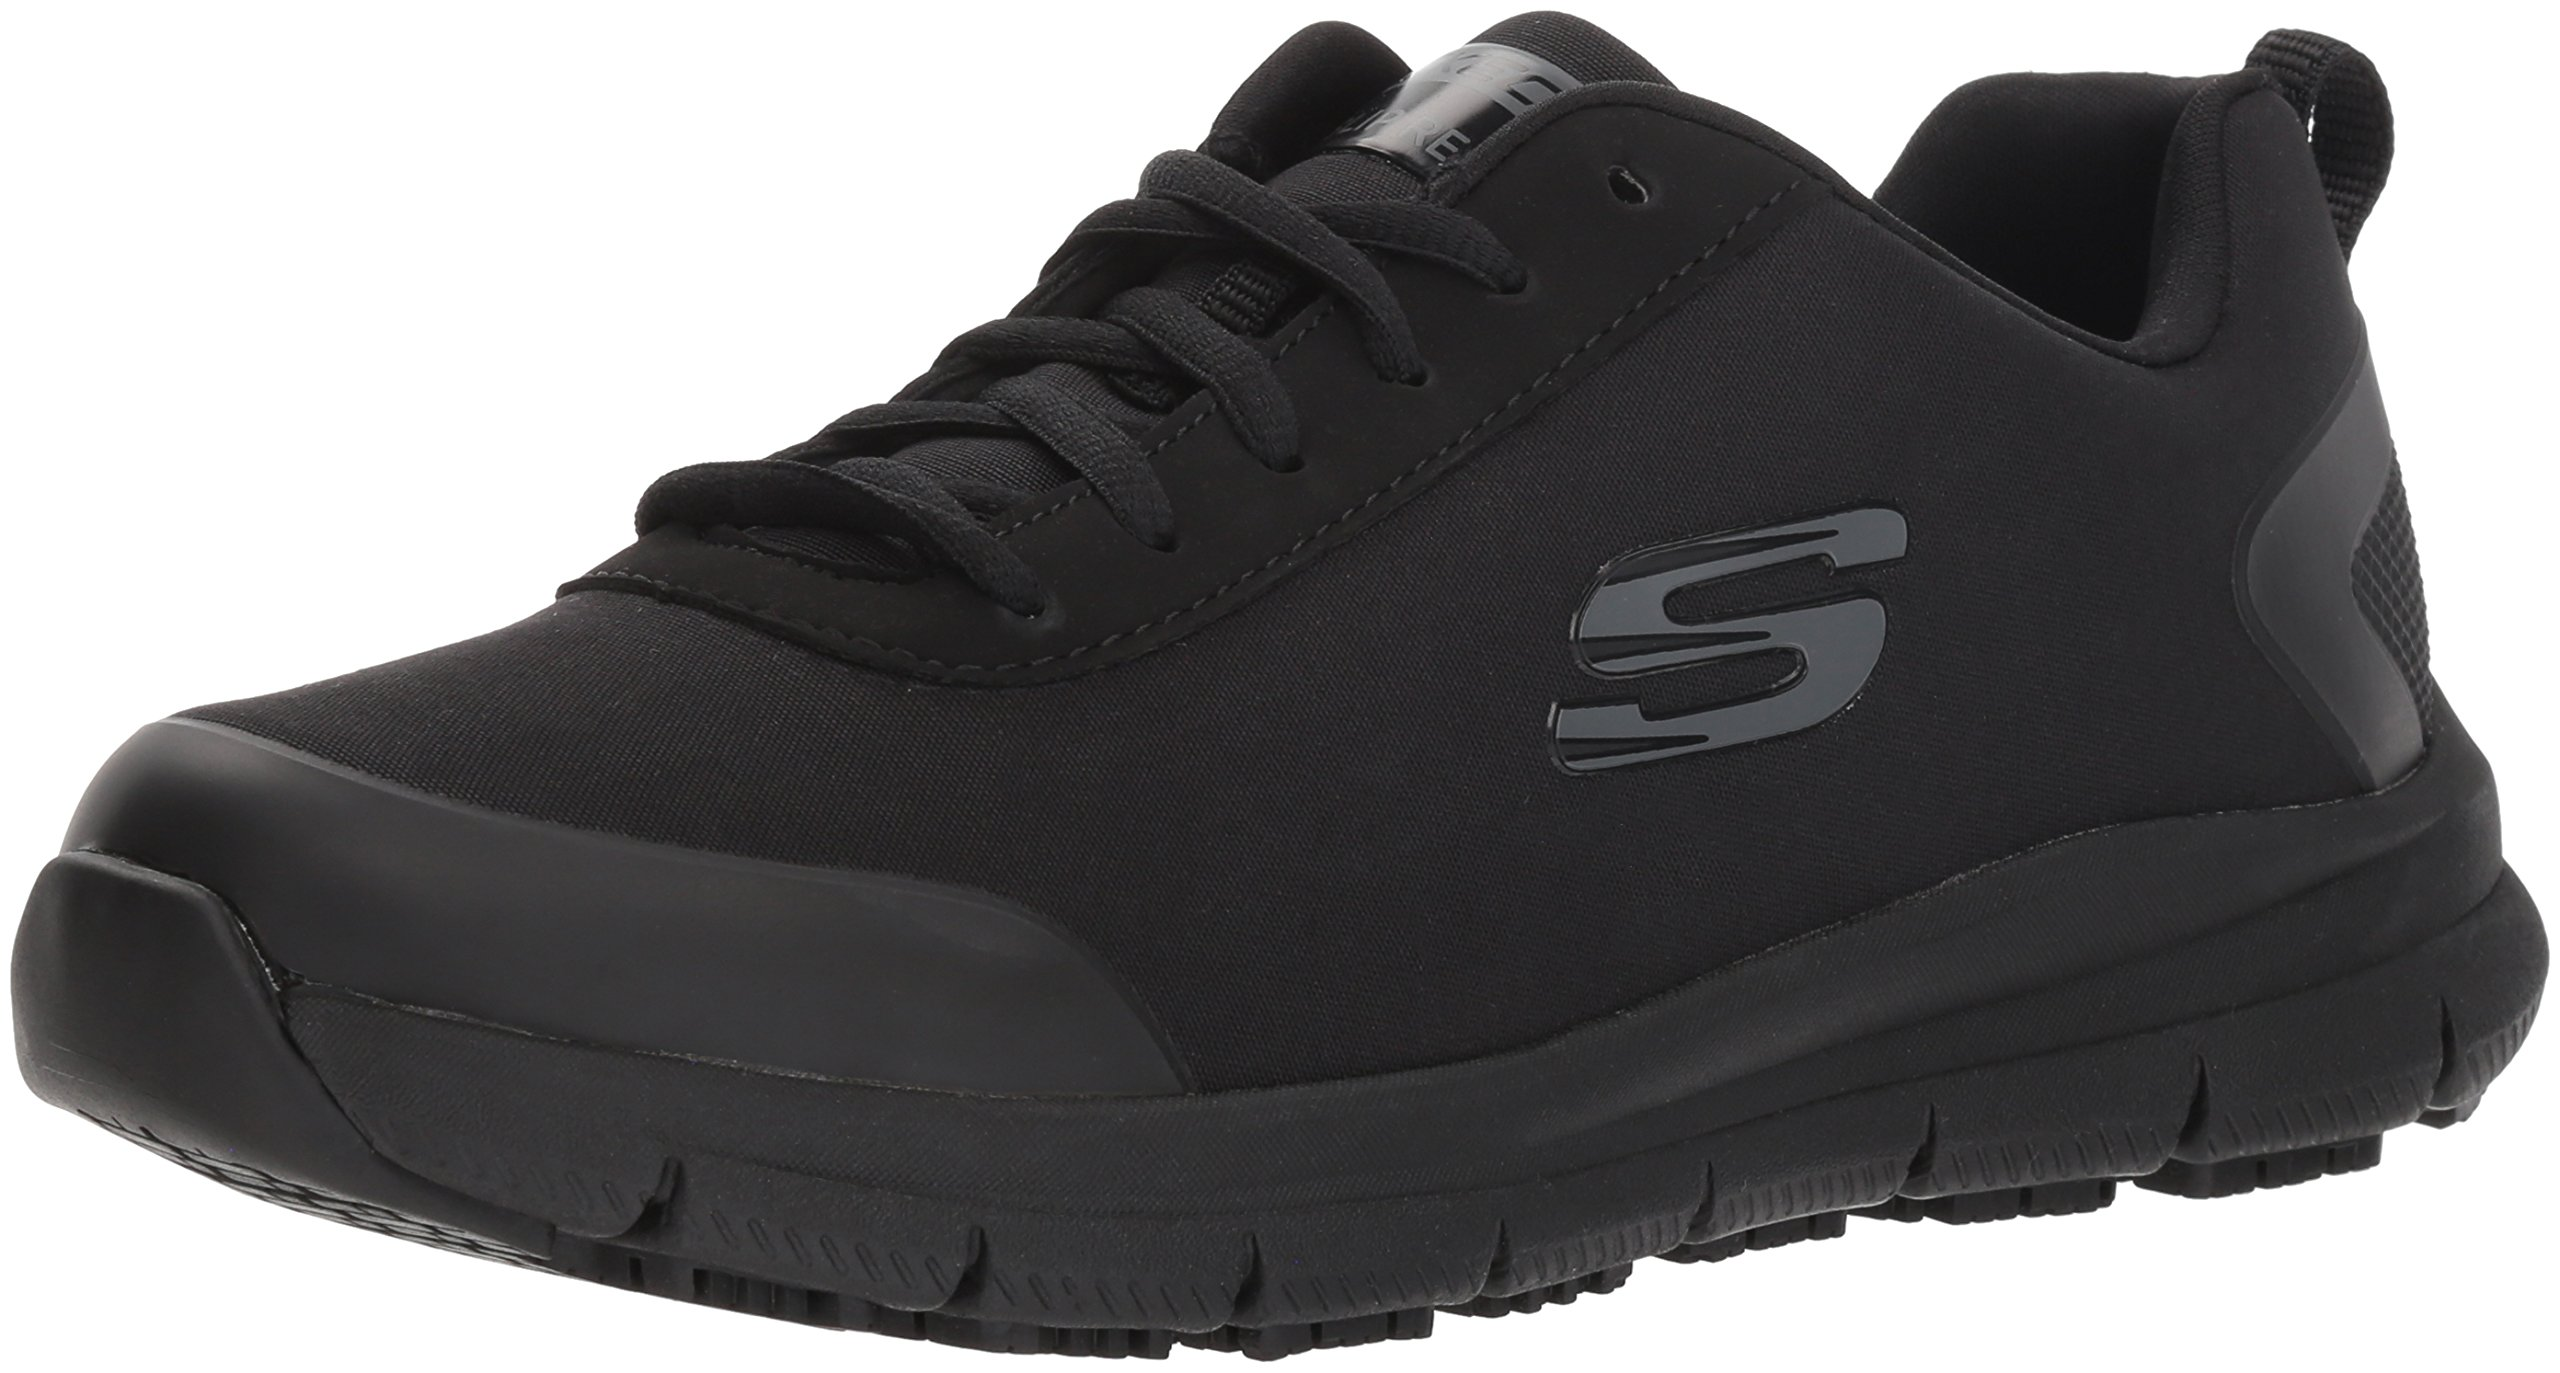 Skechers Women's Comfort Flex Sr Hc Pro Health Care Professional Shoe,Black,9.5 Medium US